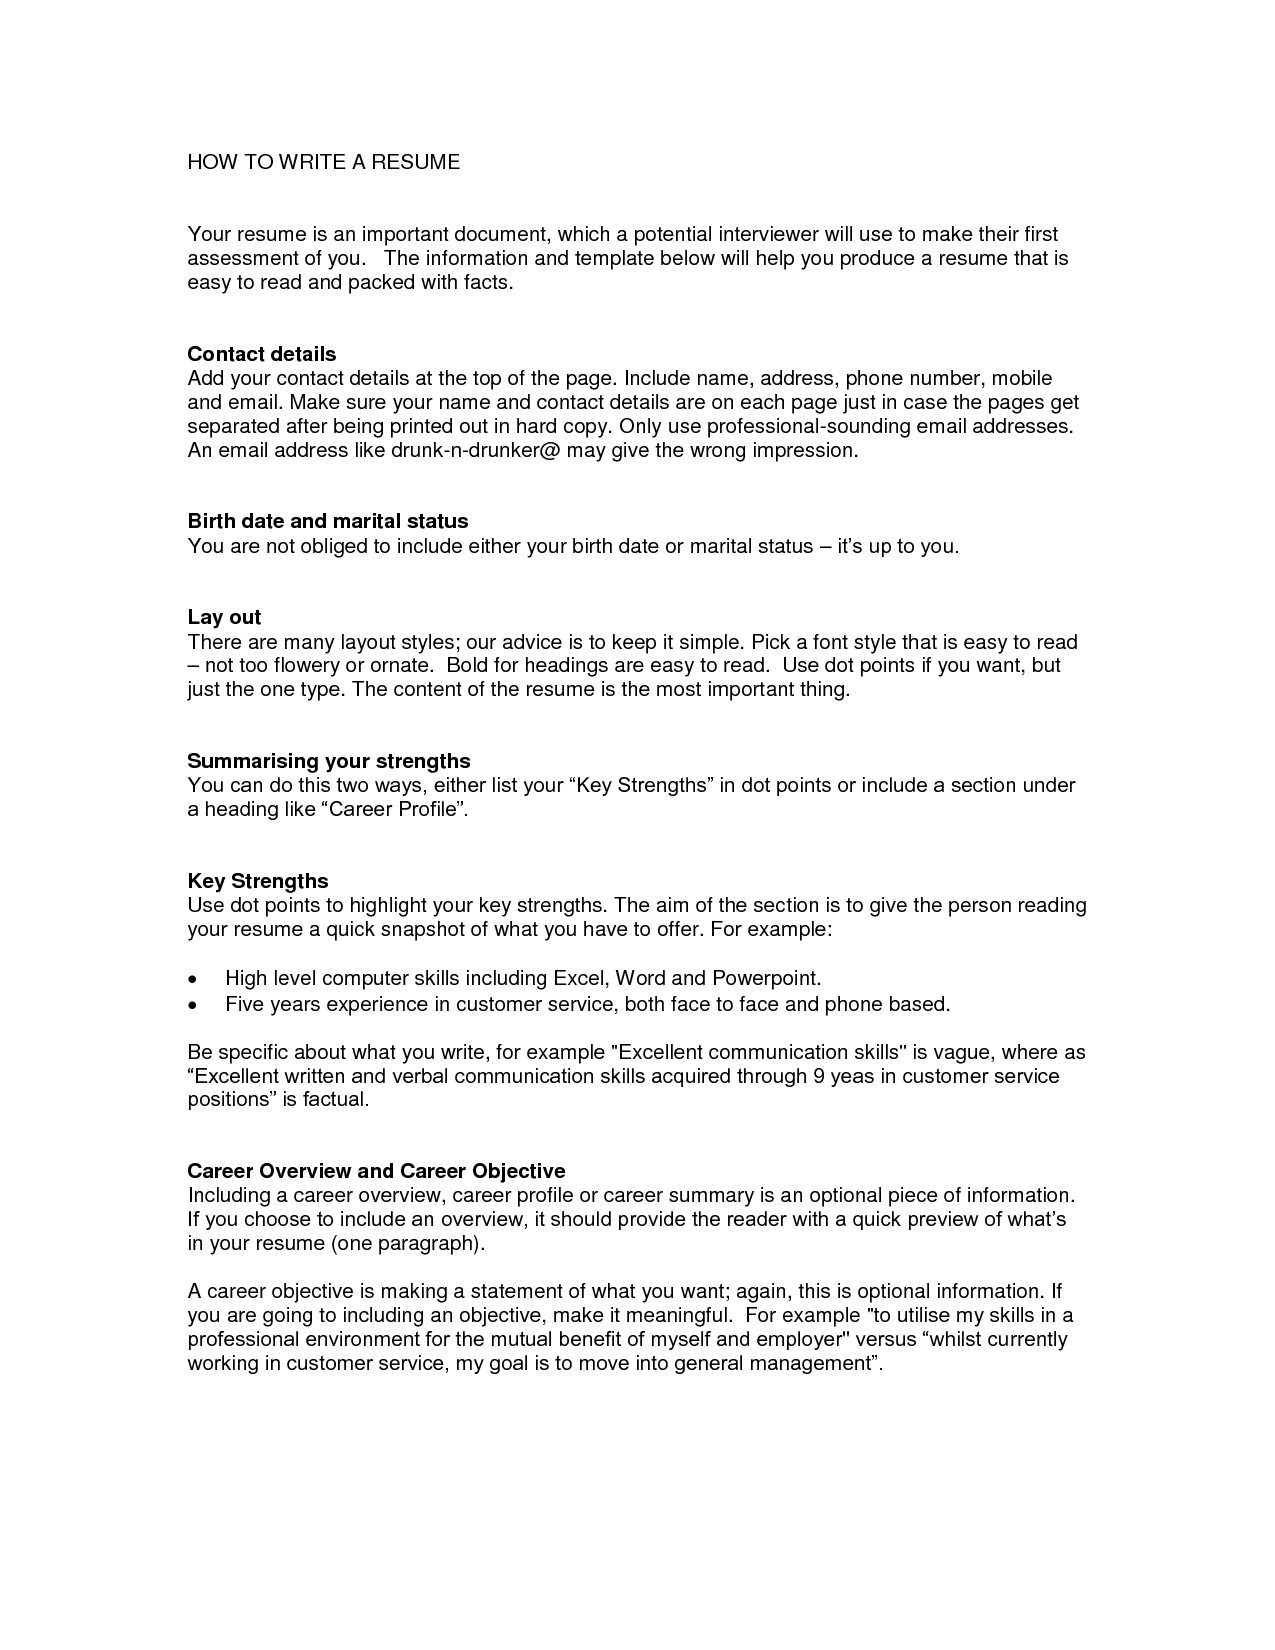 Resume Objective For Retail How To Write A Resume Net The Easiest Online Resume Builderwriting